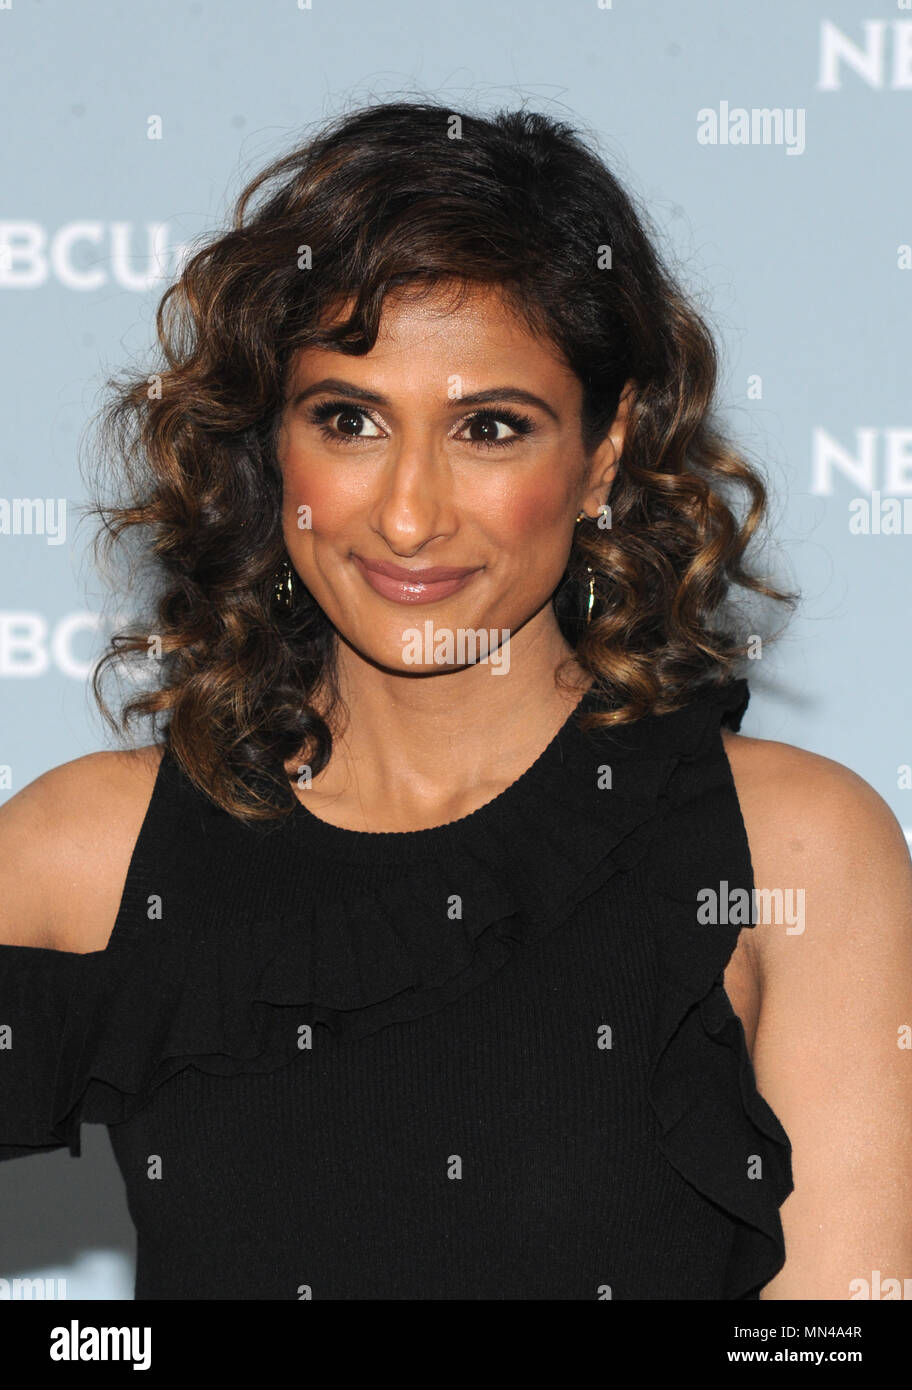 Sarayu Blue High Resolution Stock Photography And Images Alamy She also played audrey in the season one station 19 episode hot box. https www alamy com new york ny usa 14th may 2018 sarayu blue at the 2018 nbcuniversal upfront at rockefeller center in new york city on may 14 2018 credit john palmermedia punchalamy live news image185107239 html